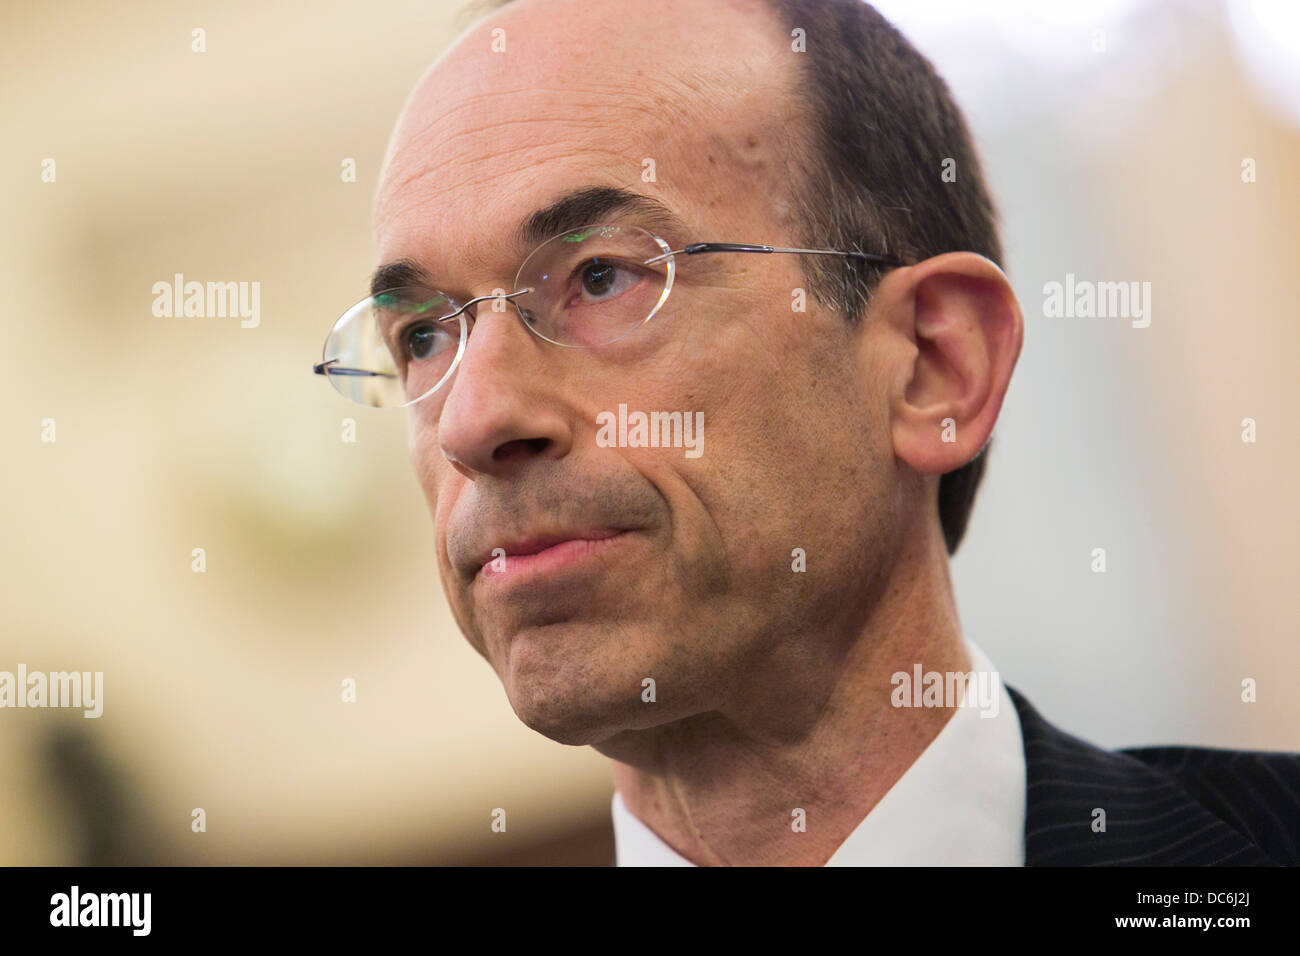 Adam Goldstein, CEO of Royal Caribbean International. - Stock Image